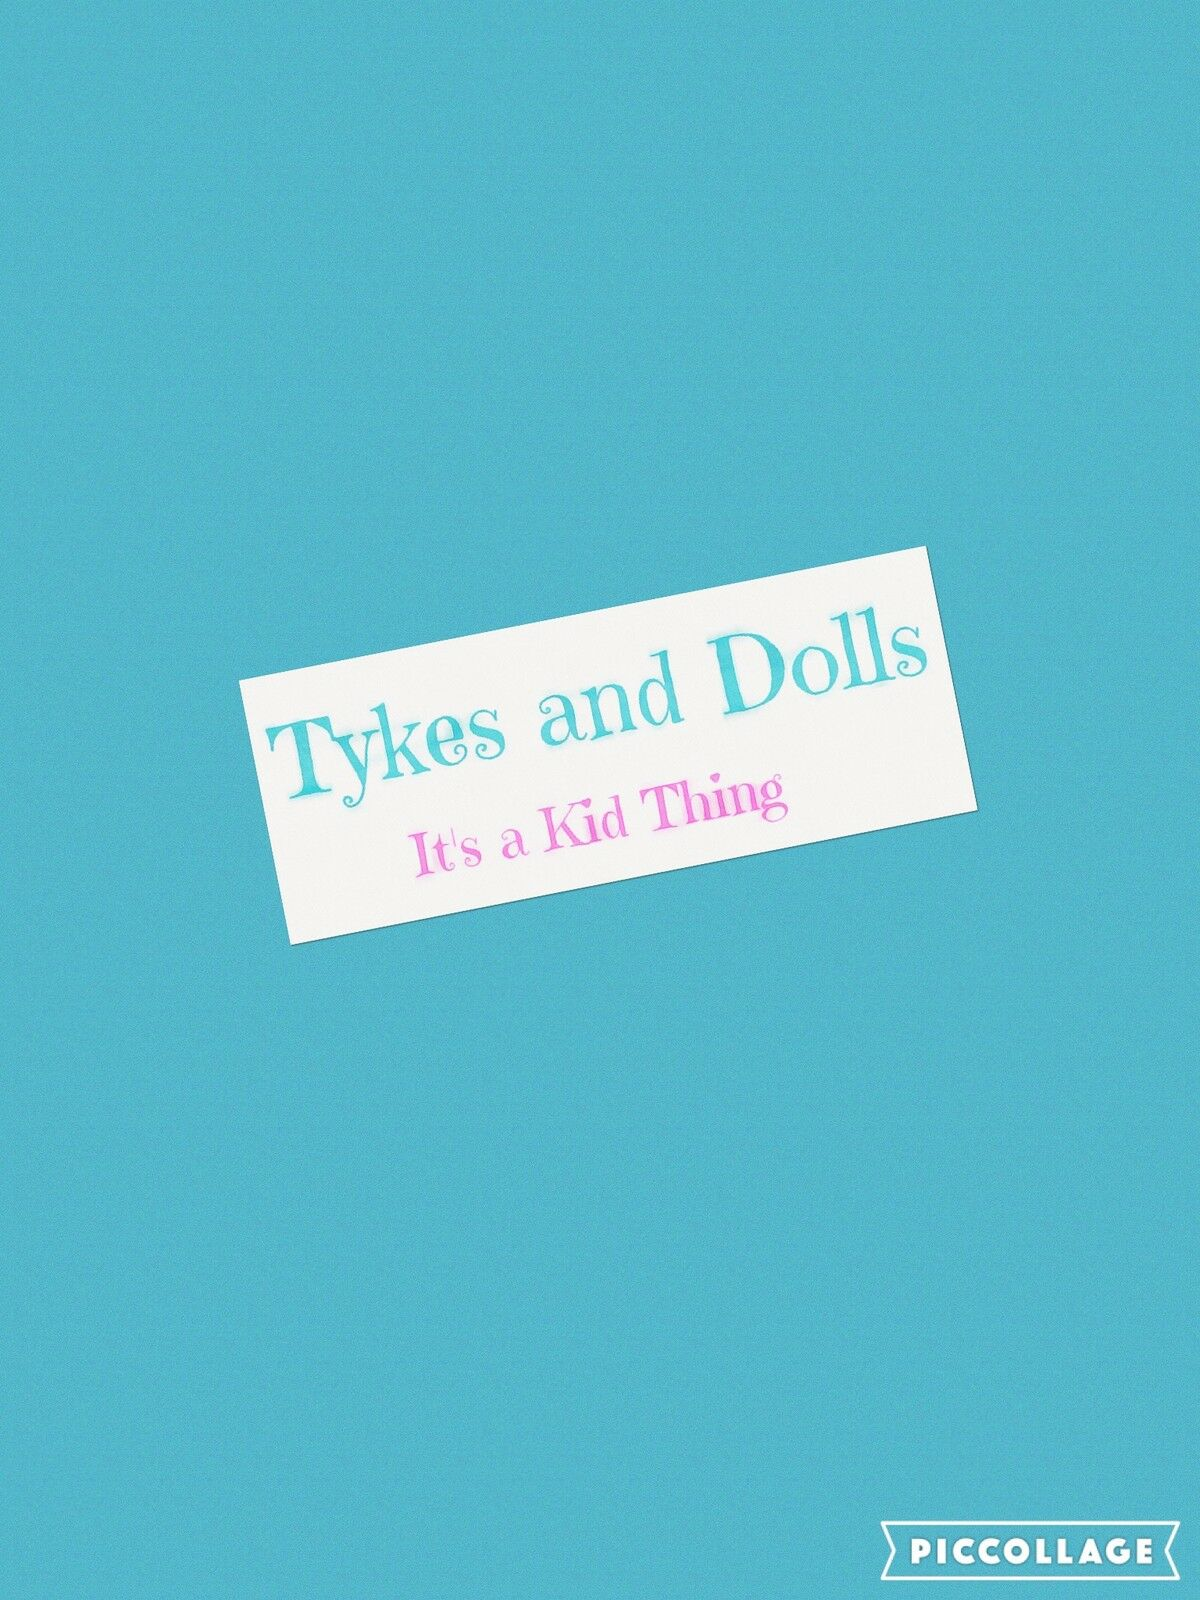 Tykes and Dolls